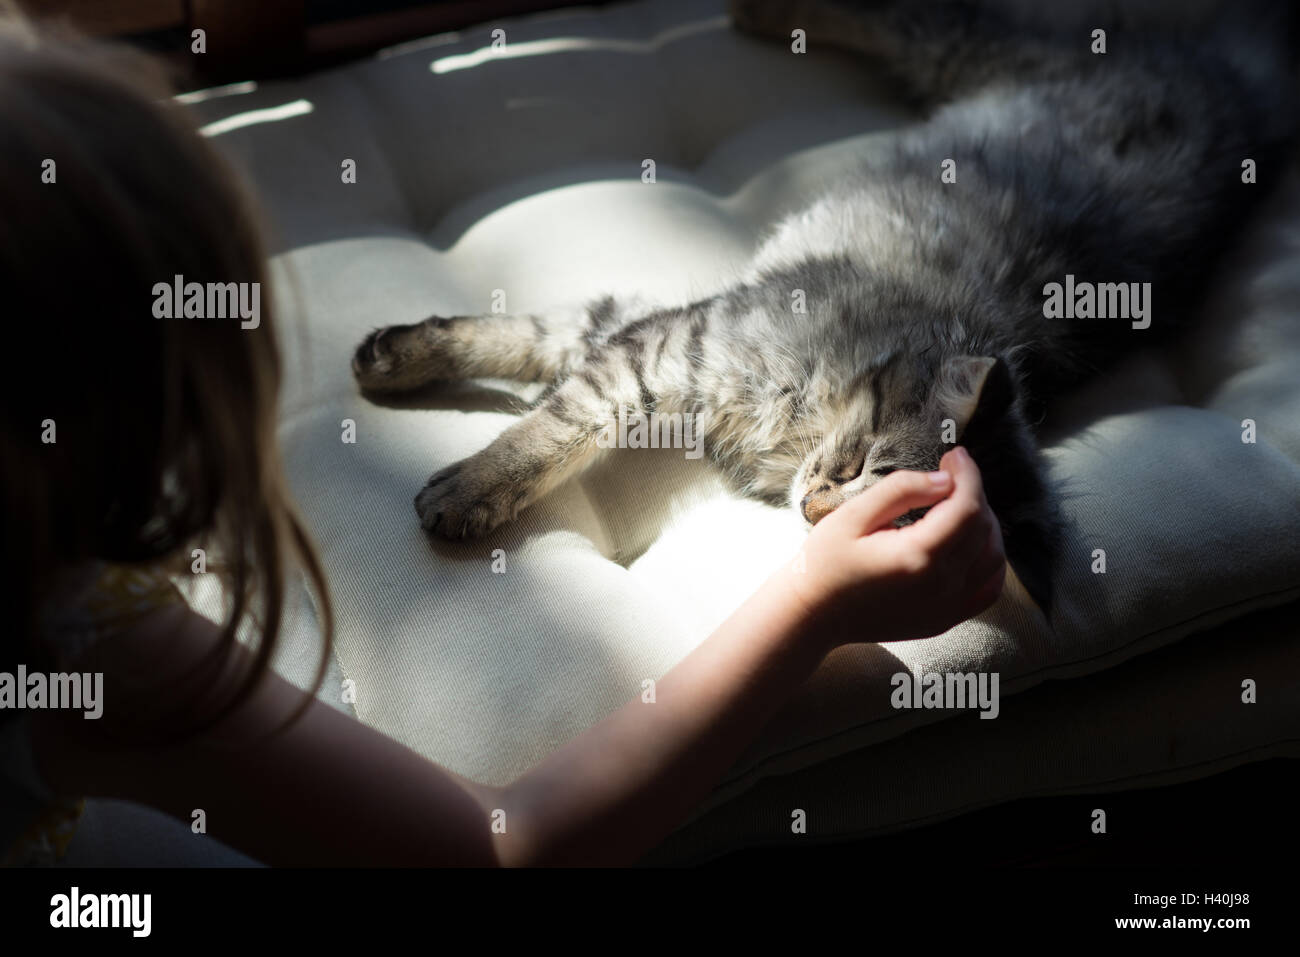 Child's hand petting small tabby kitten in dramatic light lifestyle home photo - Stock Image